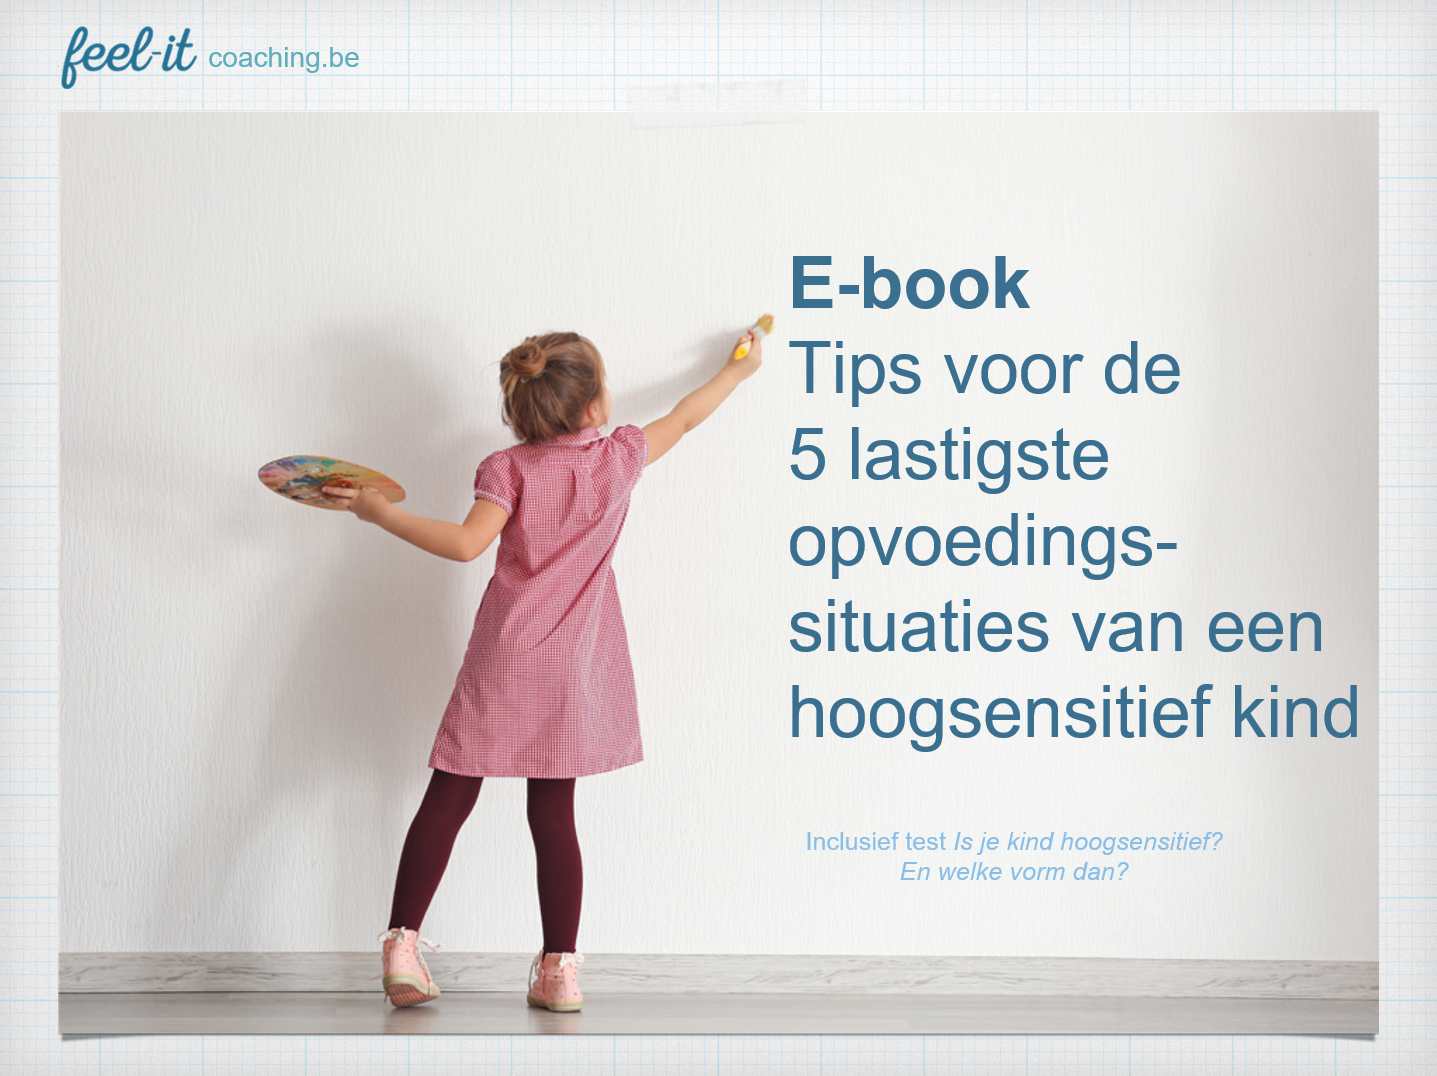 E-book afbeelding.png